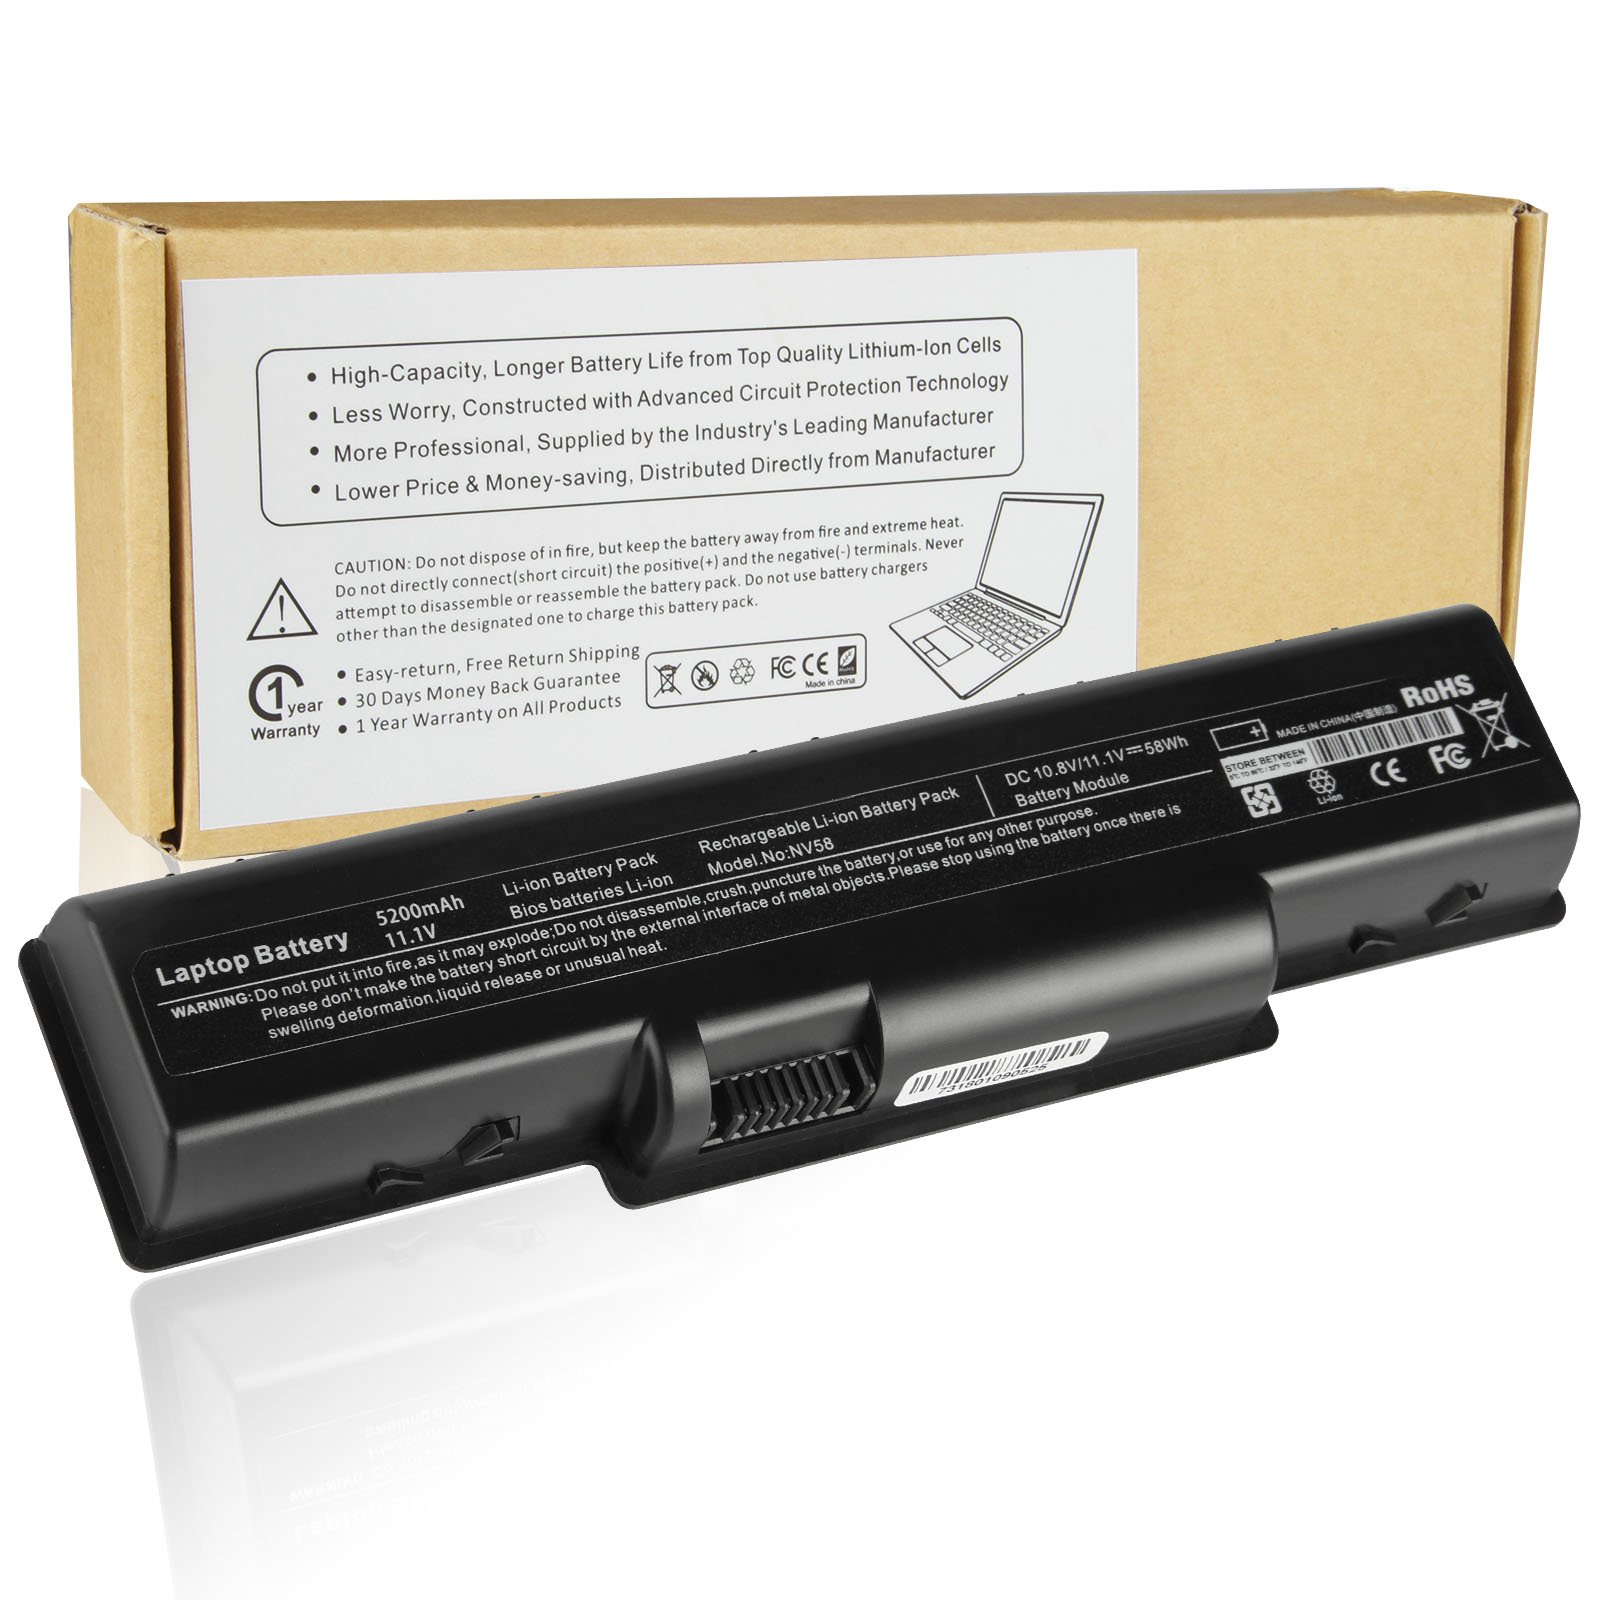 Cheap Gateway Nv58 Battery Find Deals On Line Keyboard Laptop For Acer Aspire 4732 4732z Series Emachines D725 D525 Get Quotations Futurebatt 5200mah Notebook Nv52 Nv53 Nv54 Nv56 Nv5211u